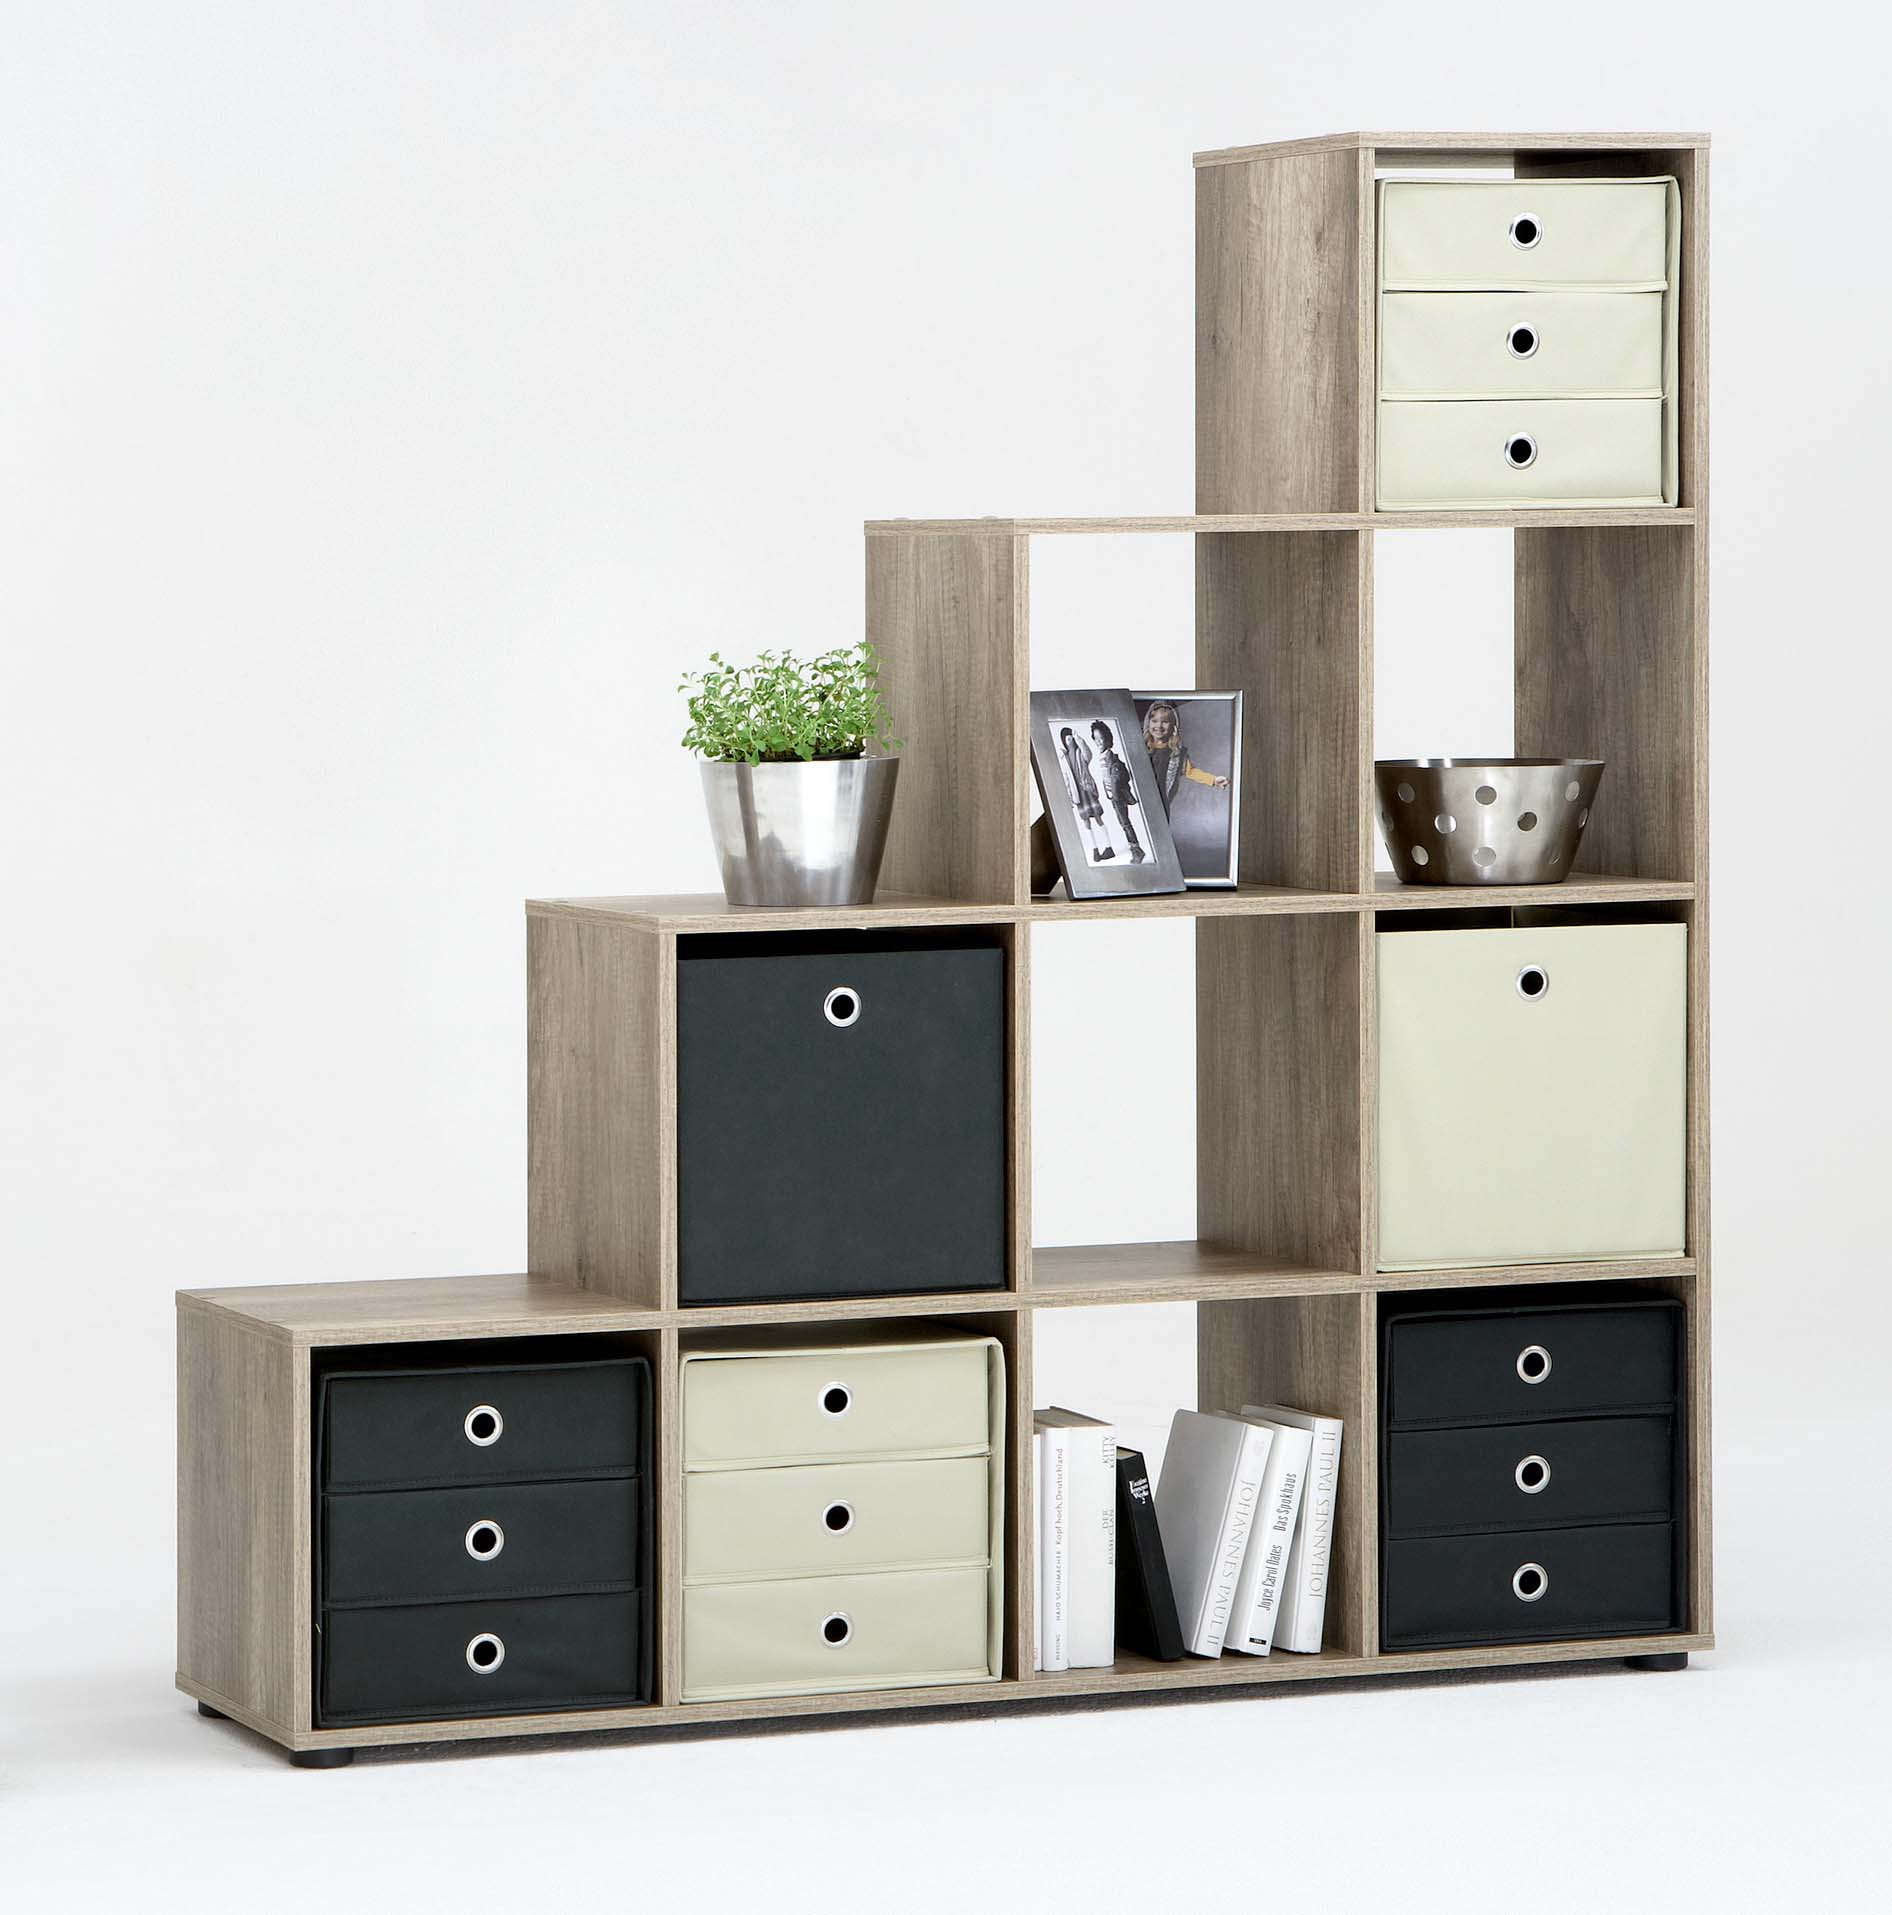 raumteiler stufenregal treppenregal aktenregal regal nussbaum wildeiche r509 ebay. Black Bedroom Furniture Sets. Home Design Ideas